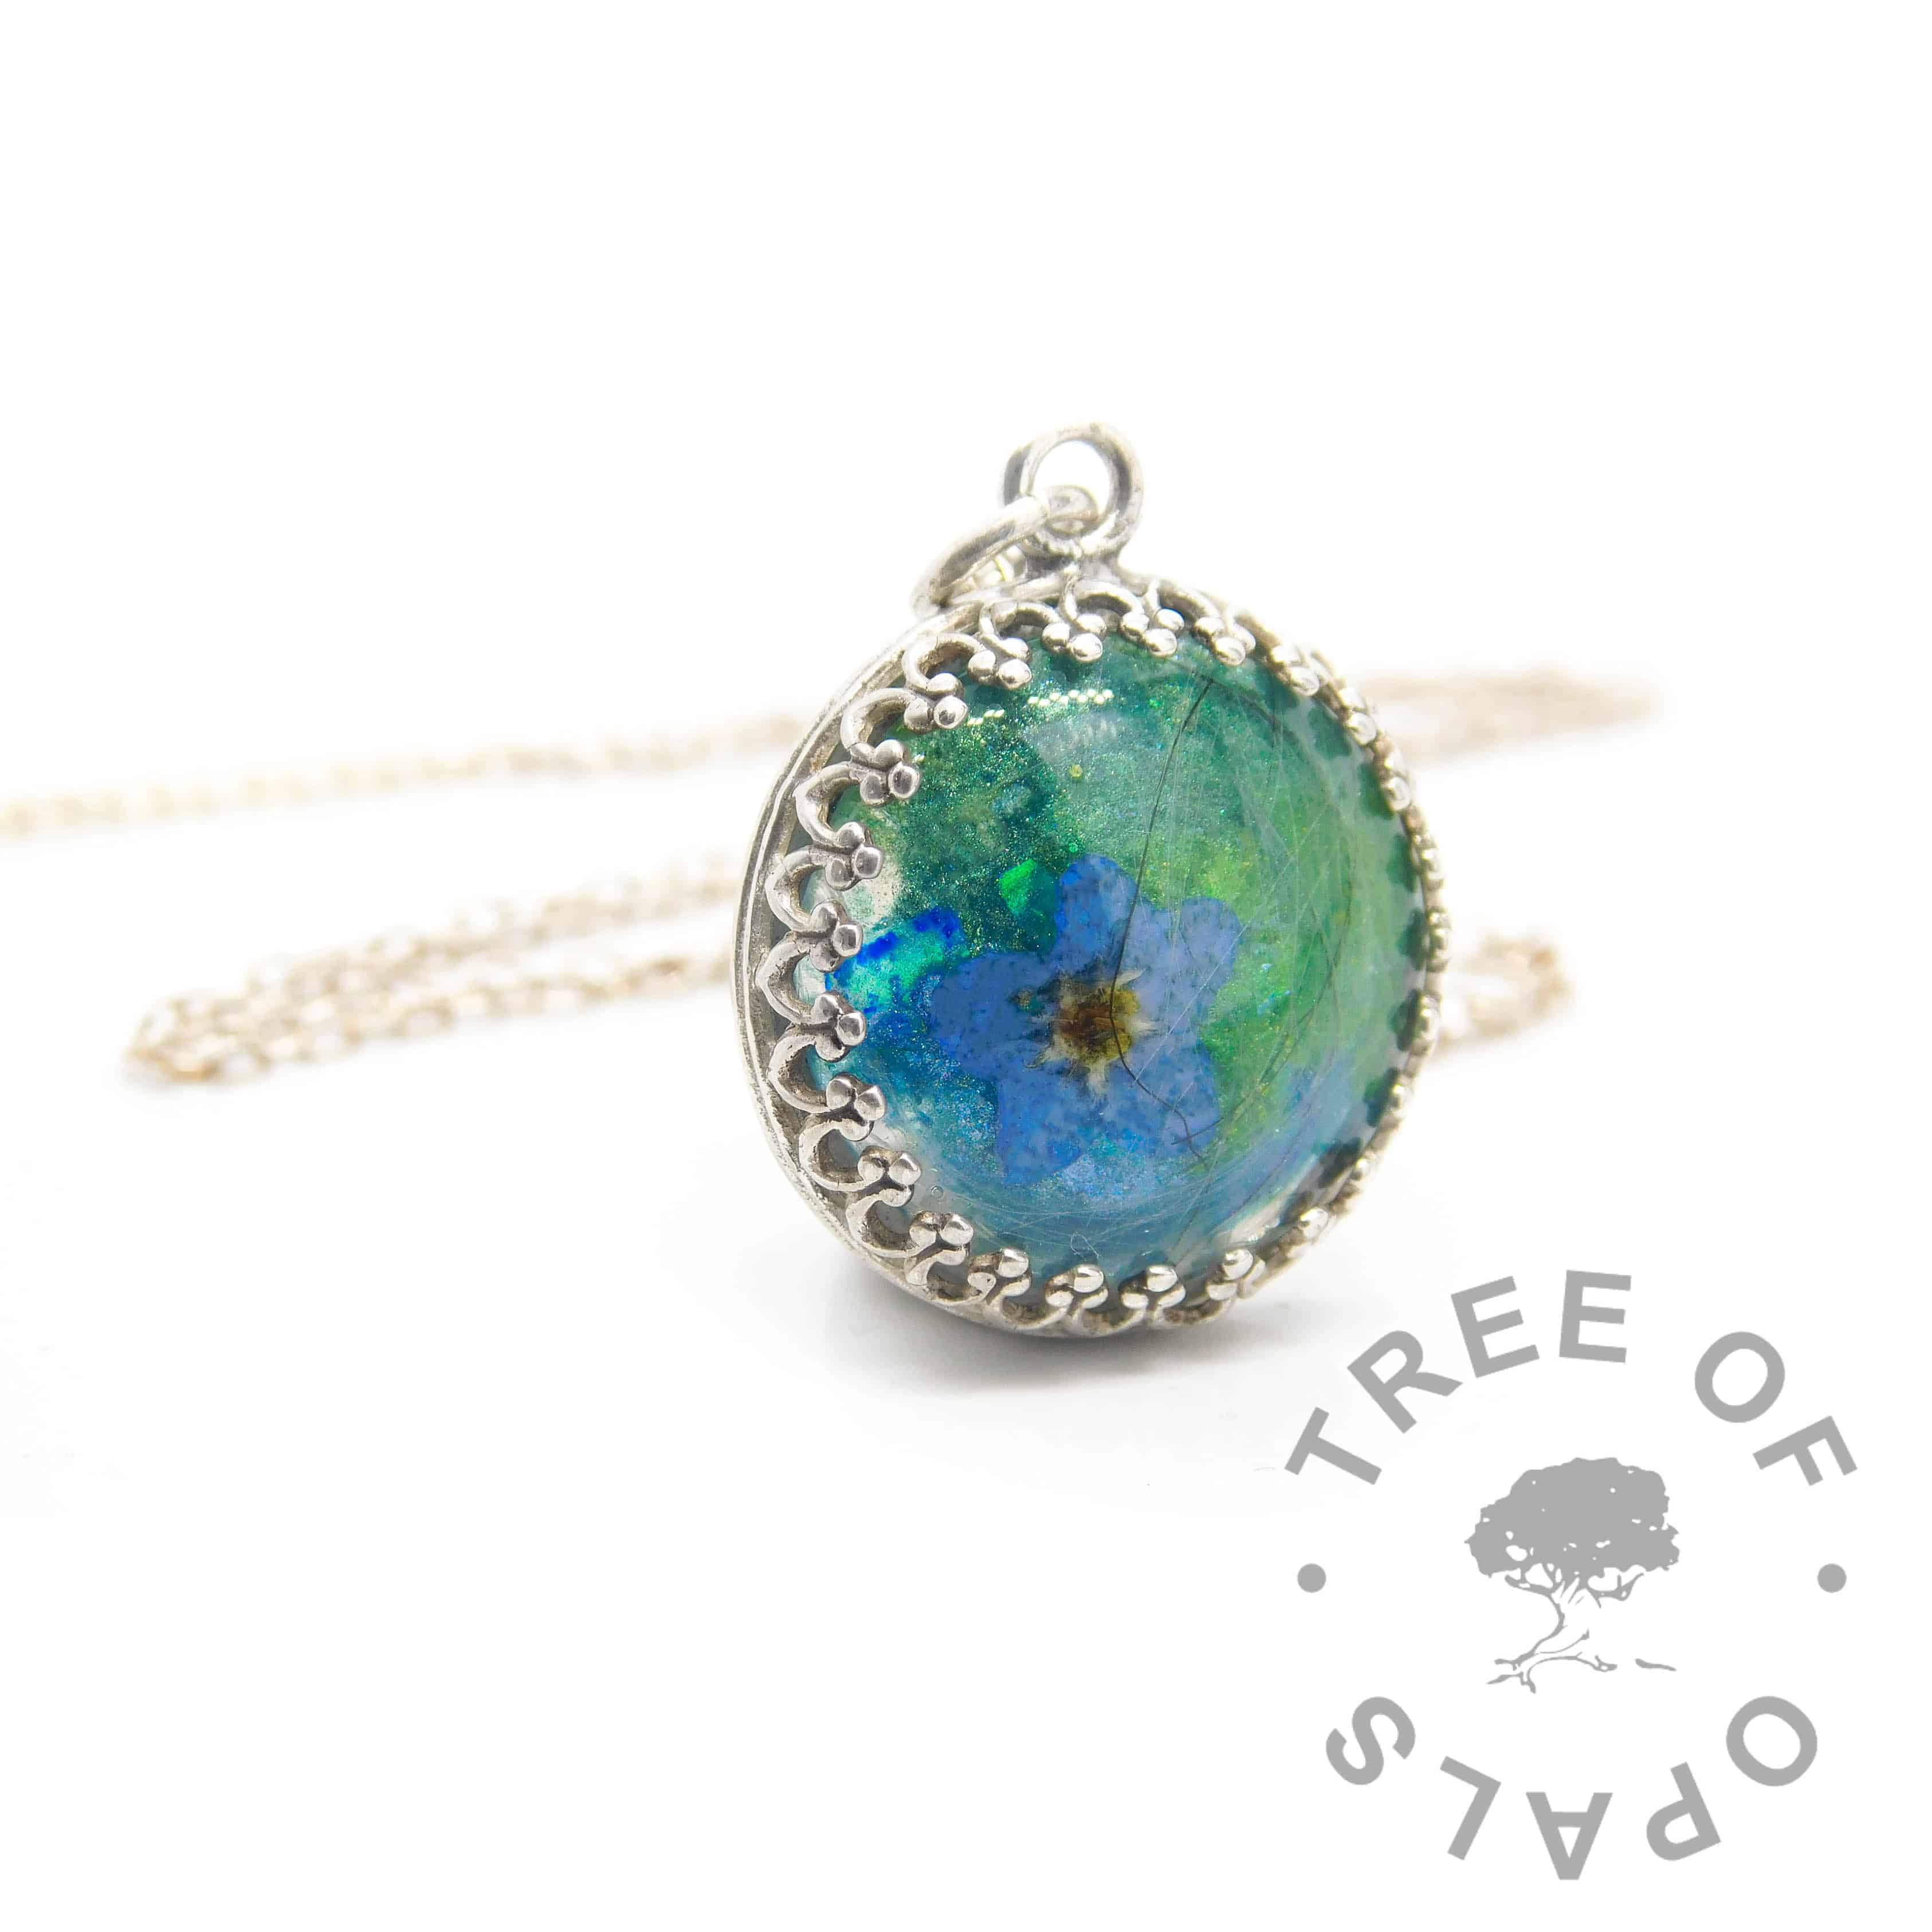 Mystery piece example, forget me not hair necklace, green blue and teal resin sparkle mixes swirled together